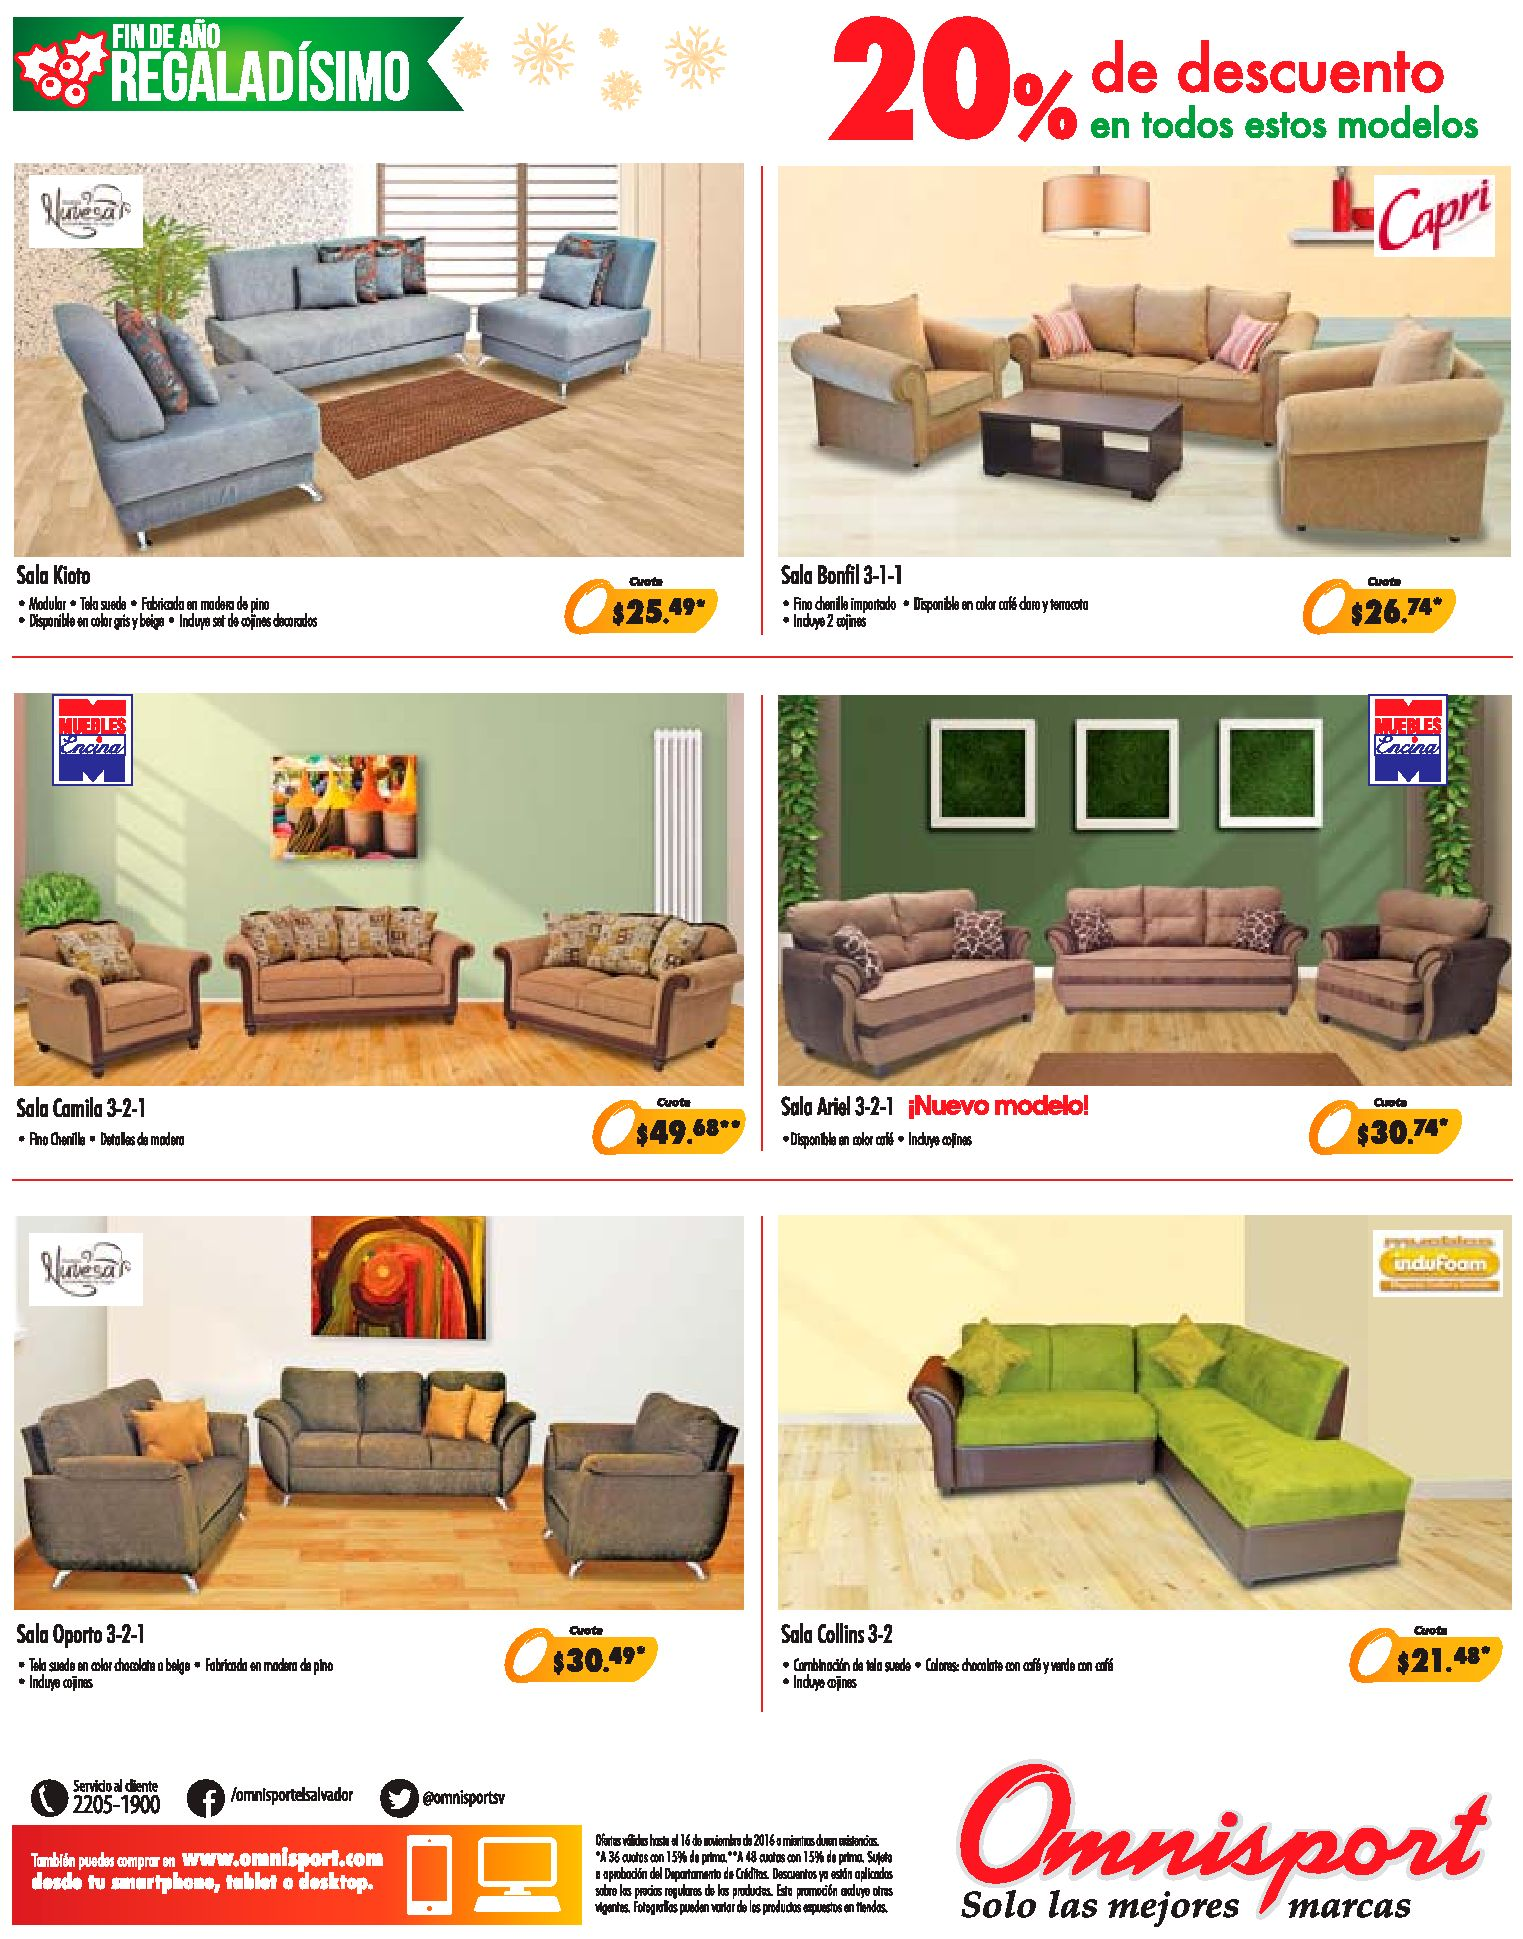 furniture-for-holidays-2016